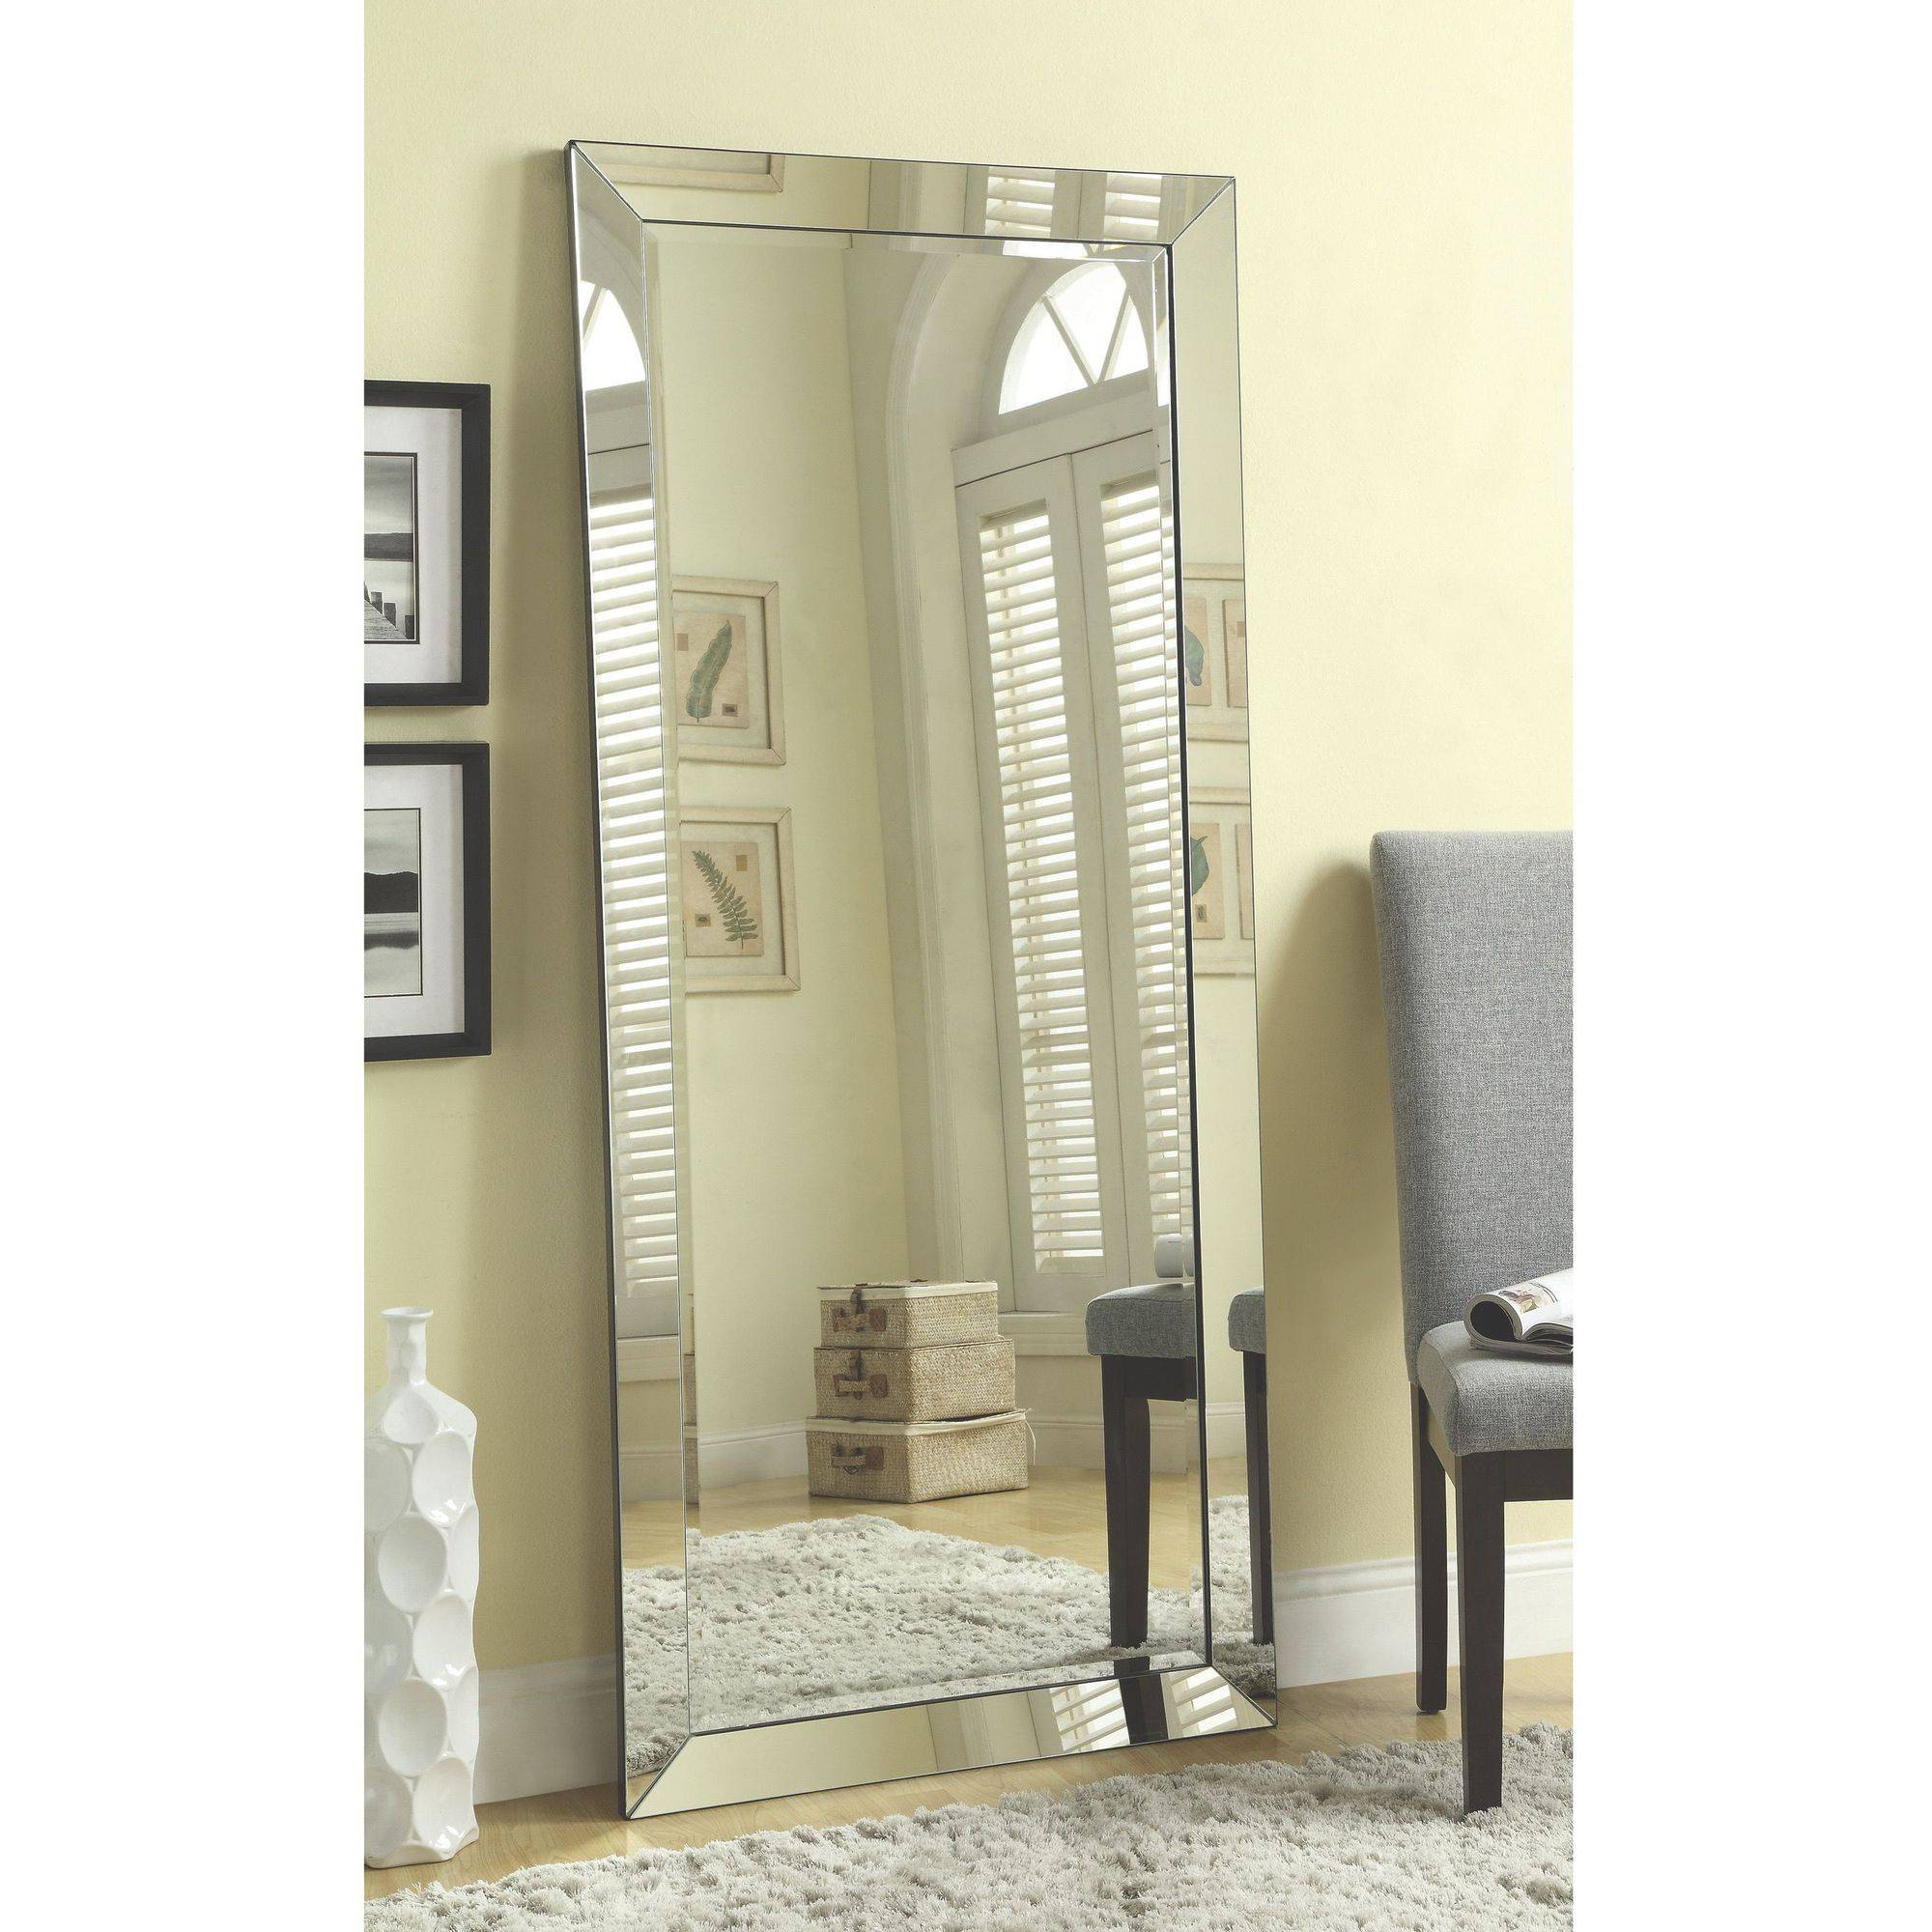 34 Most Unbeatable Long Wall Mirrors Mirror No Frame Large Frameless Throughout Well Known Framed Full Length Wall Mirrors (View 19 of 20)